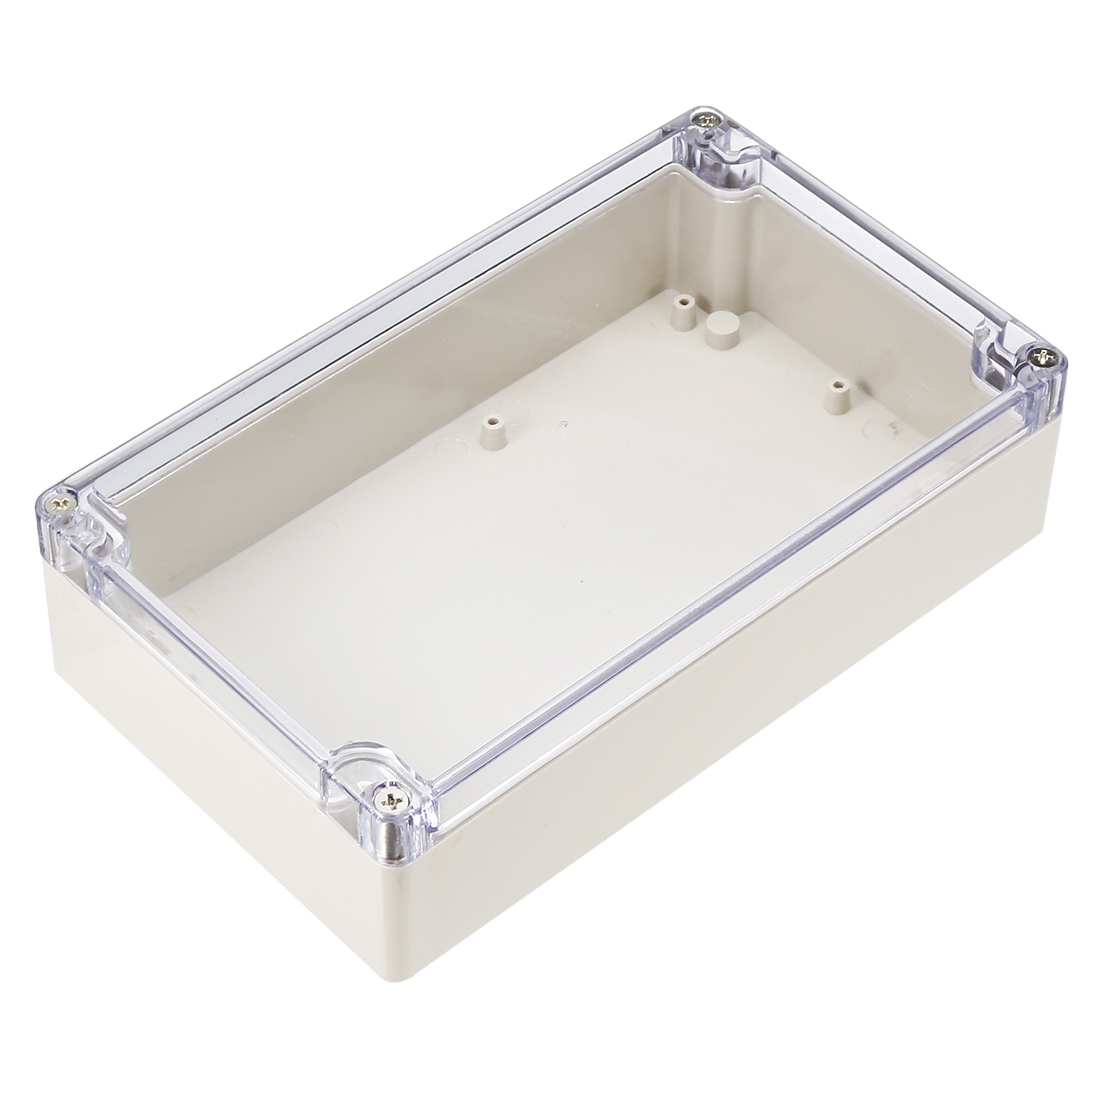 Clear Waterproof Cable Connect Electric Switch Junction Box 200 x 120 x 55mm